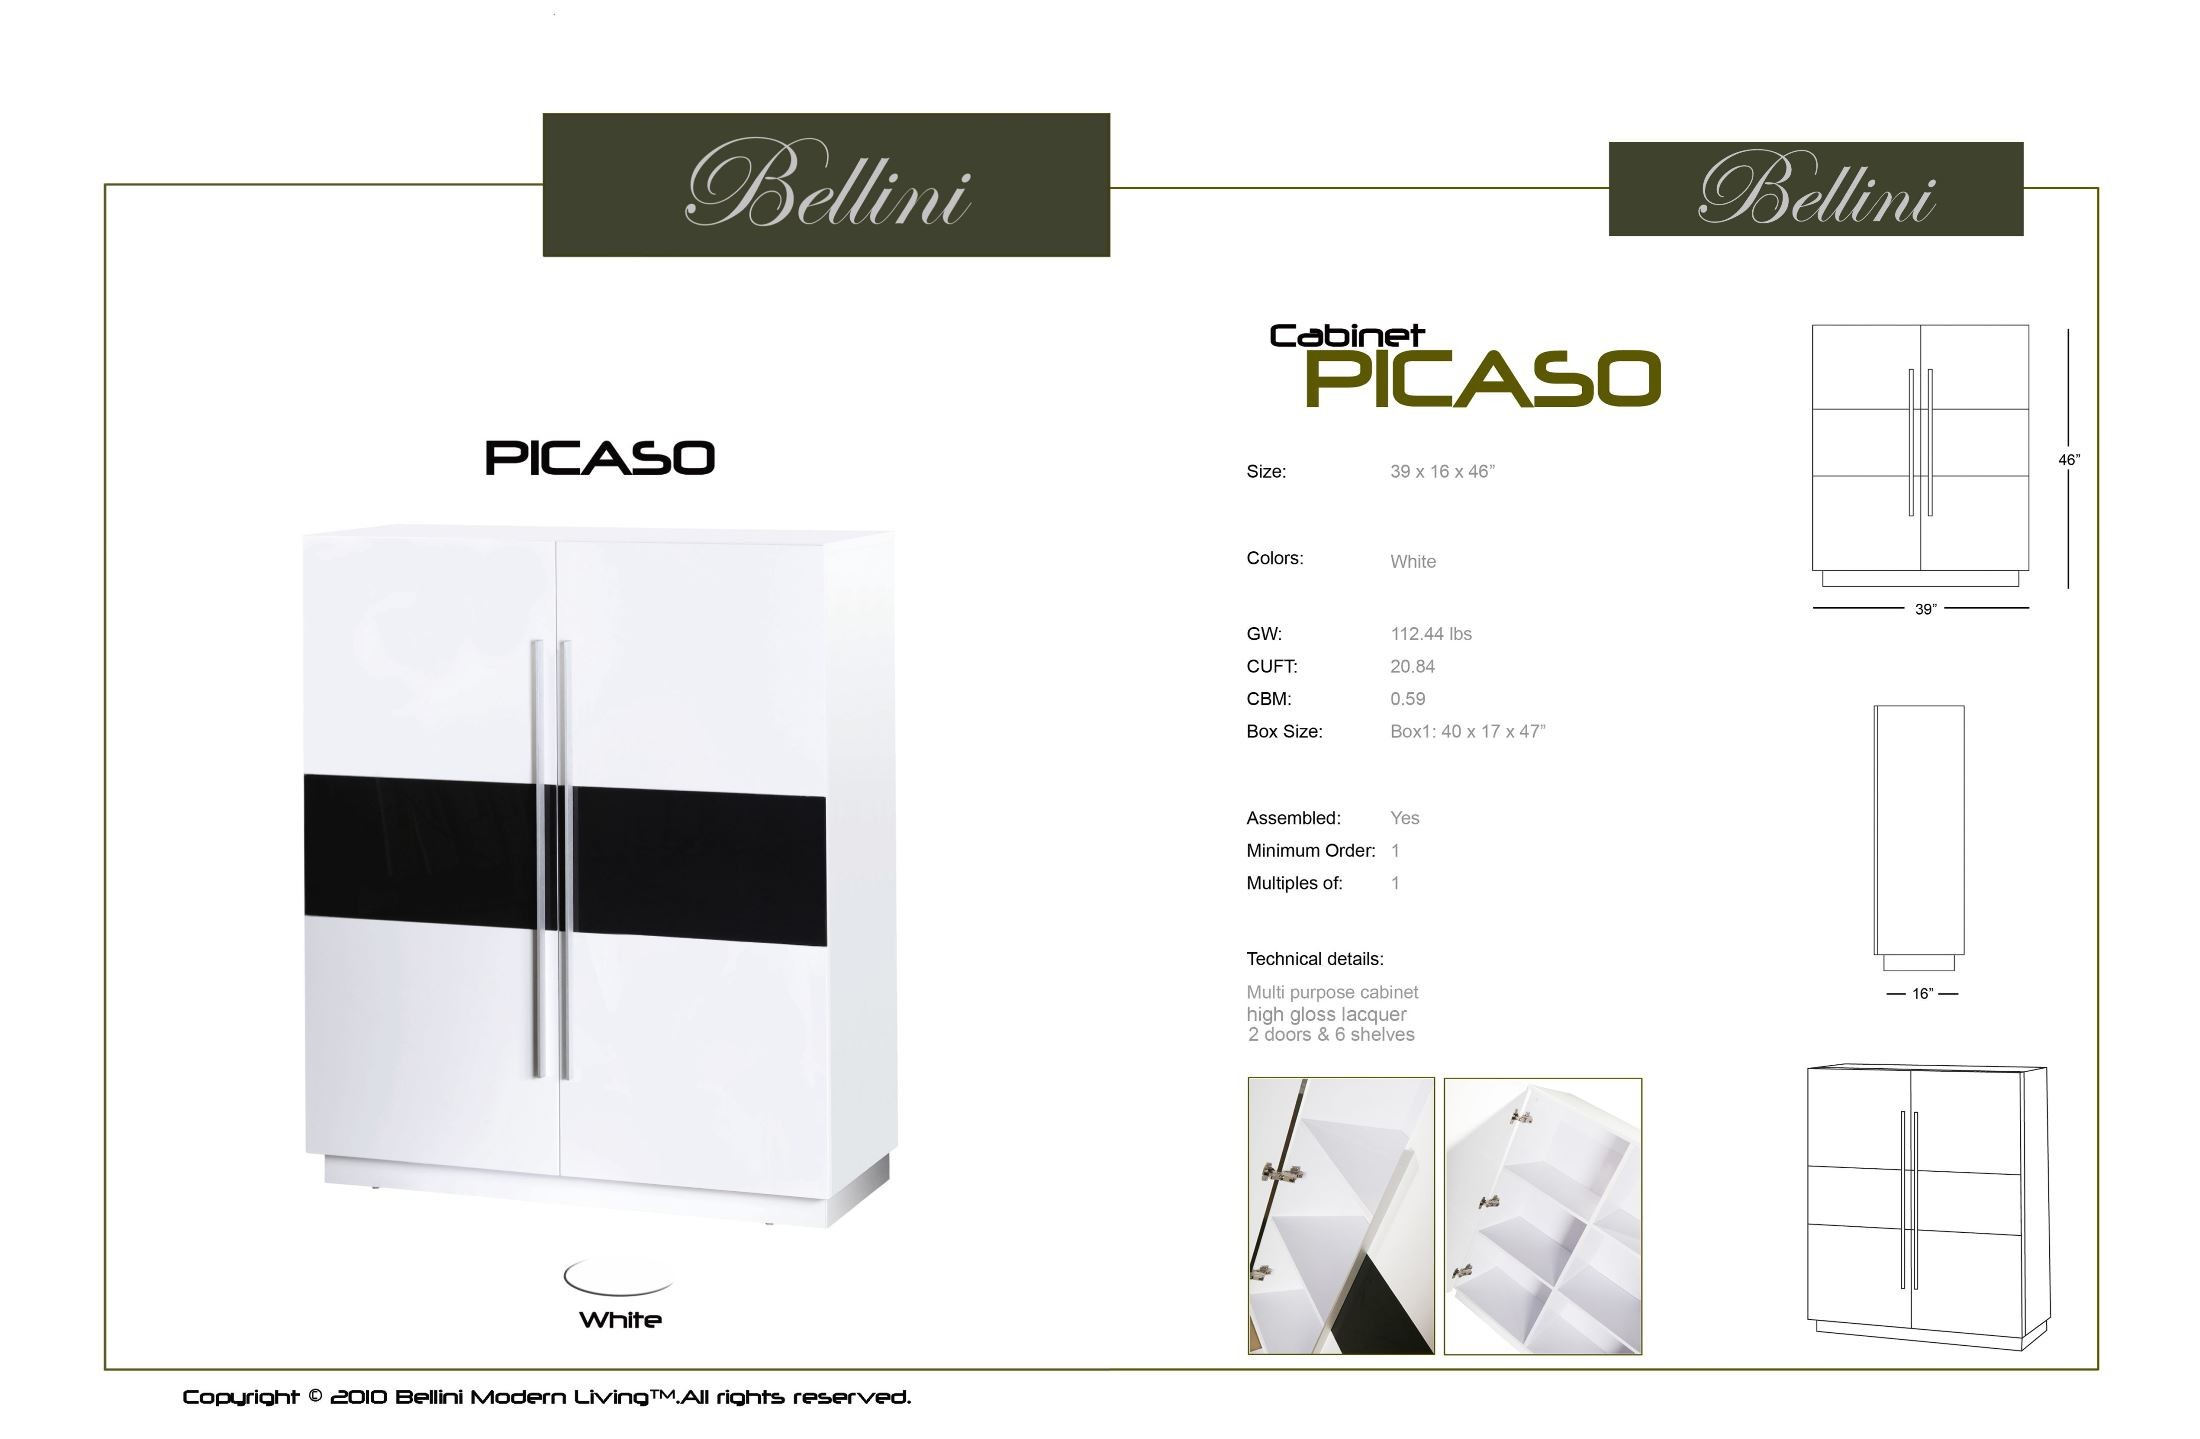 Picaso white high gloss cabinet from bellini modern living for Bellini kitchen cabinets